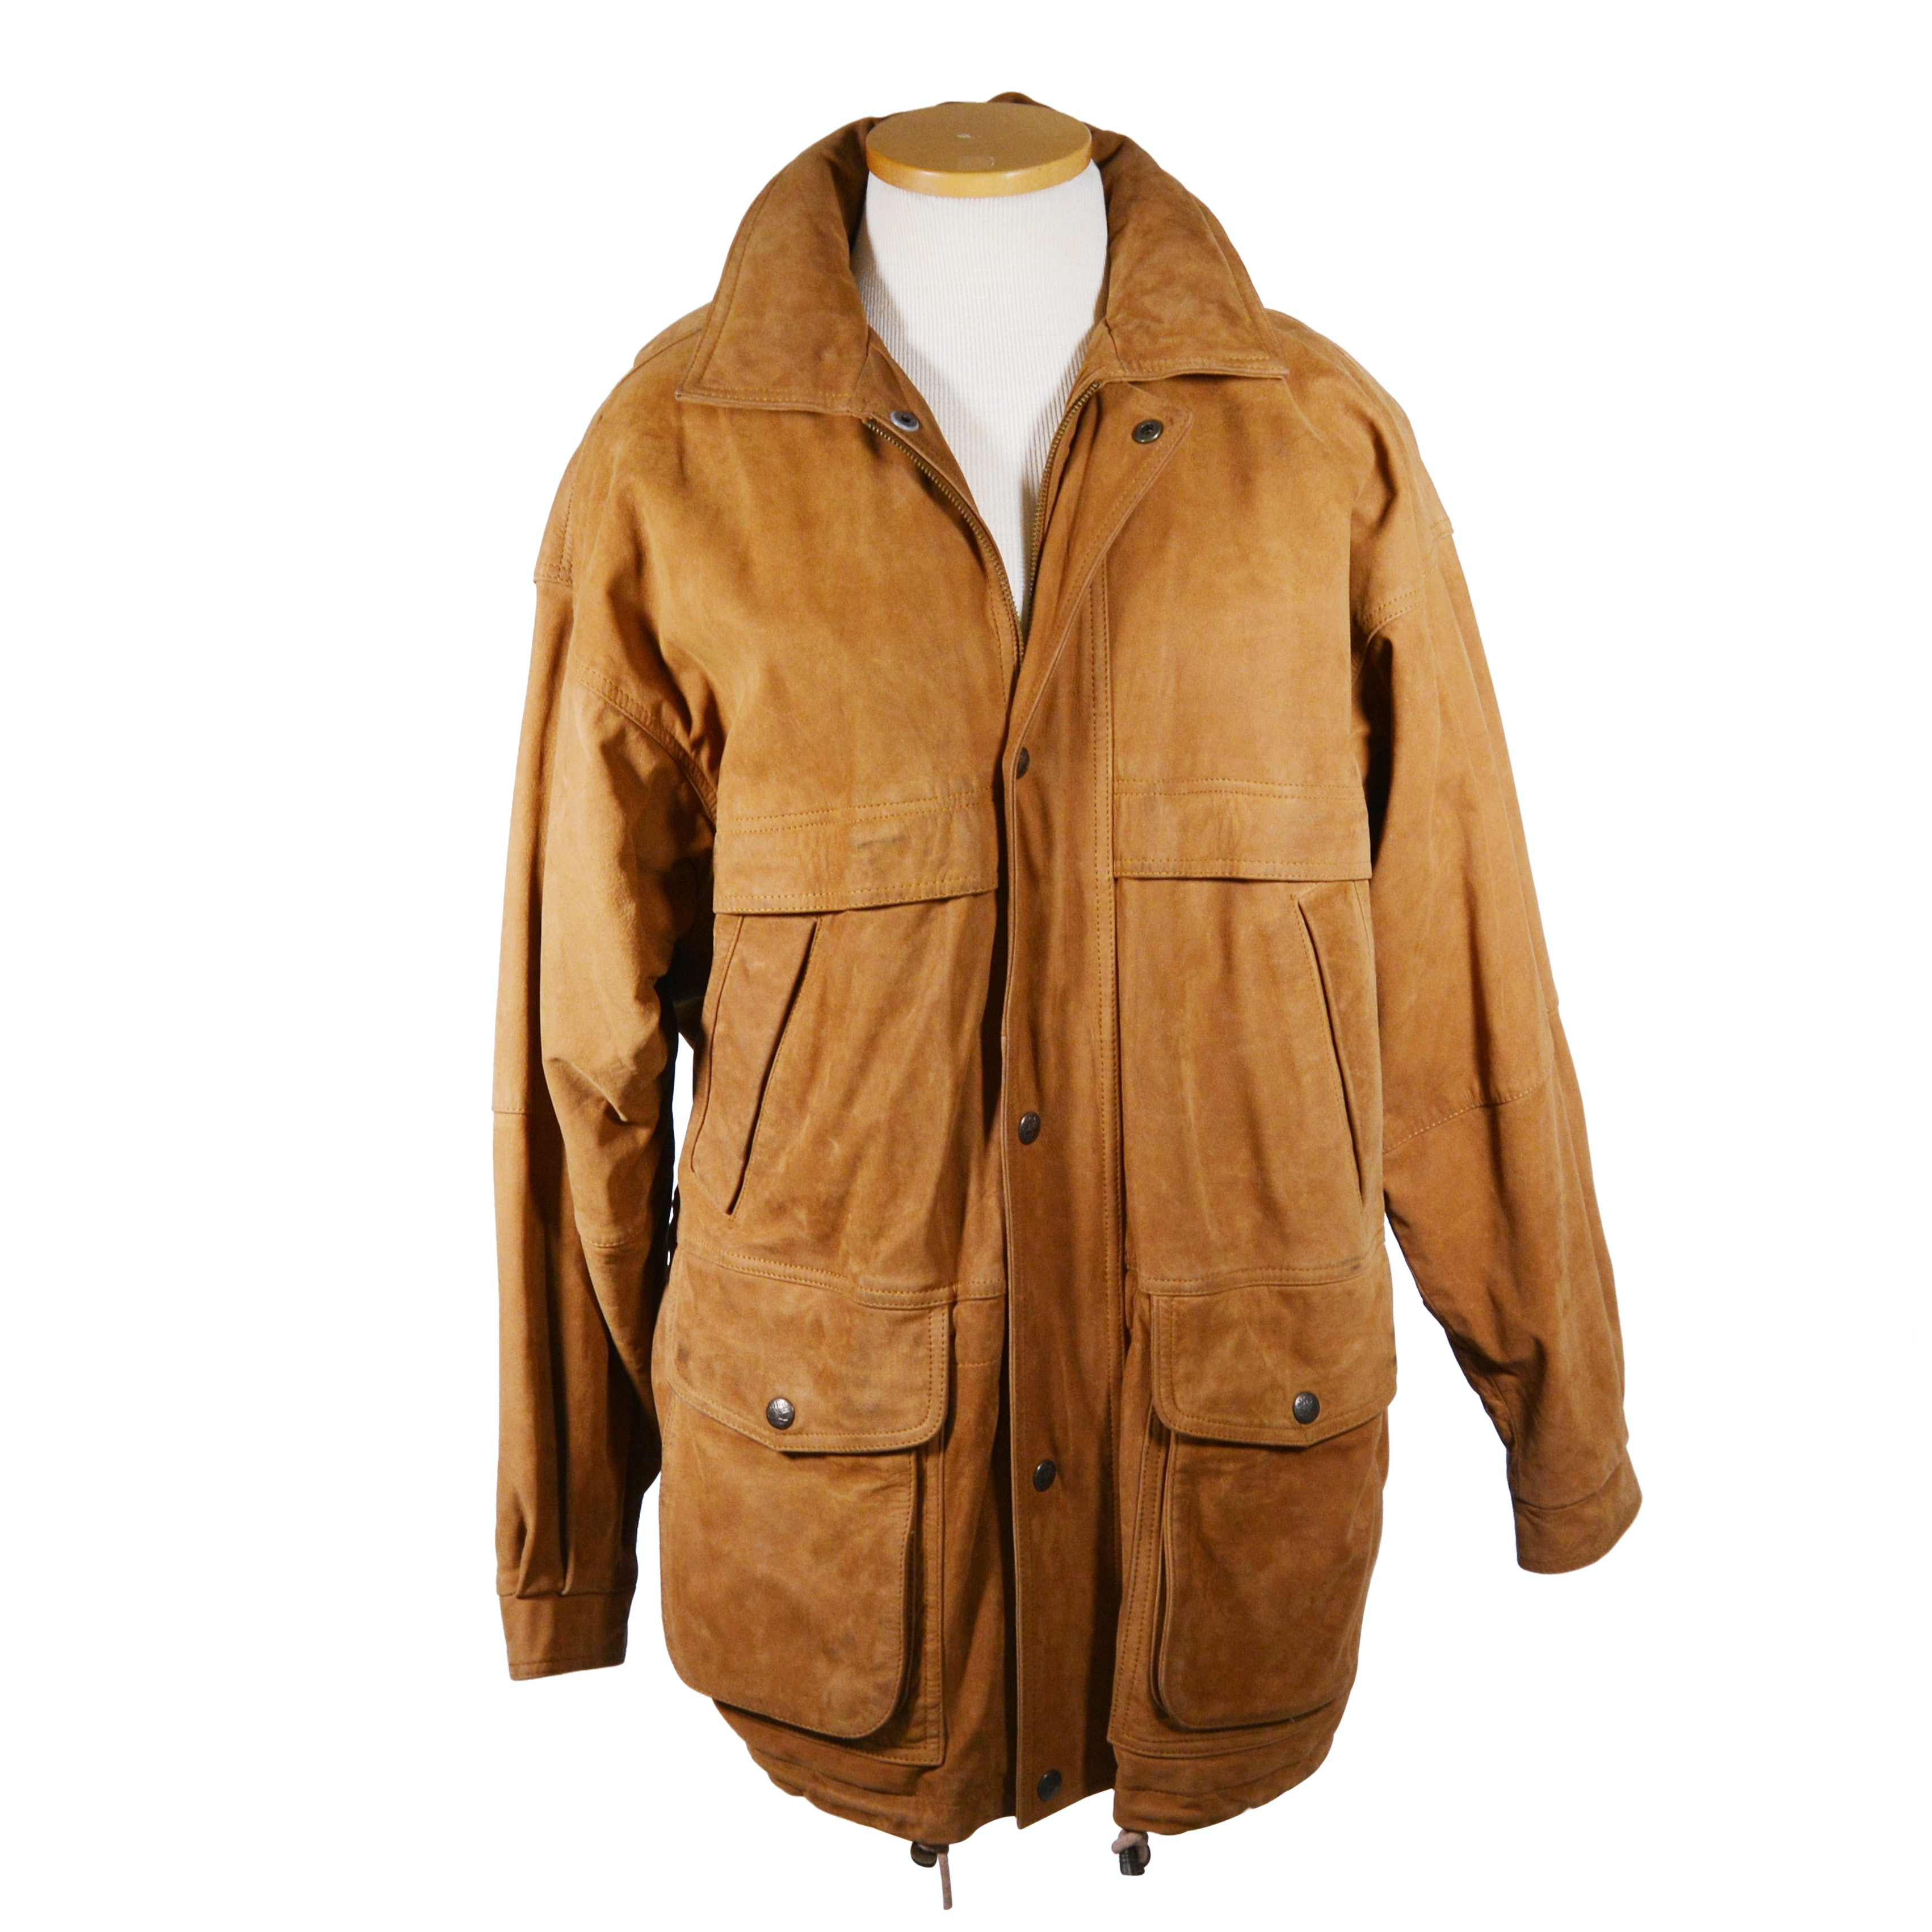 Men's Timberland Tan Leather Jacket